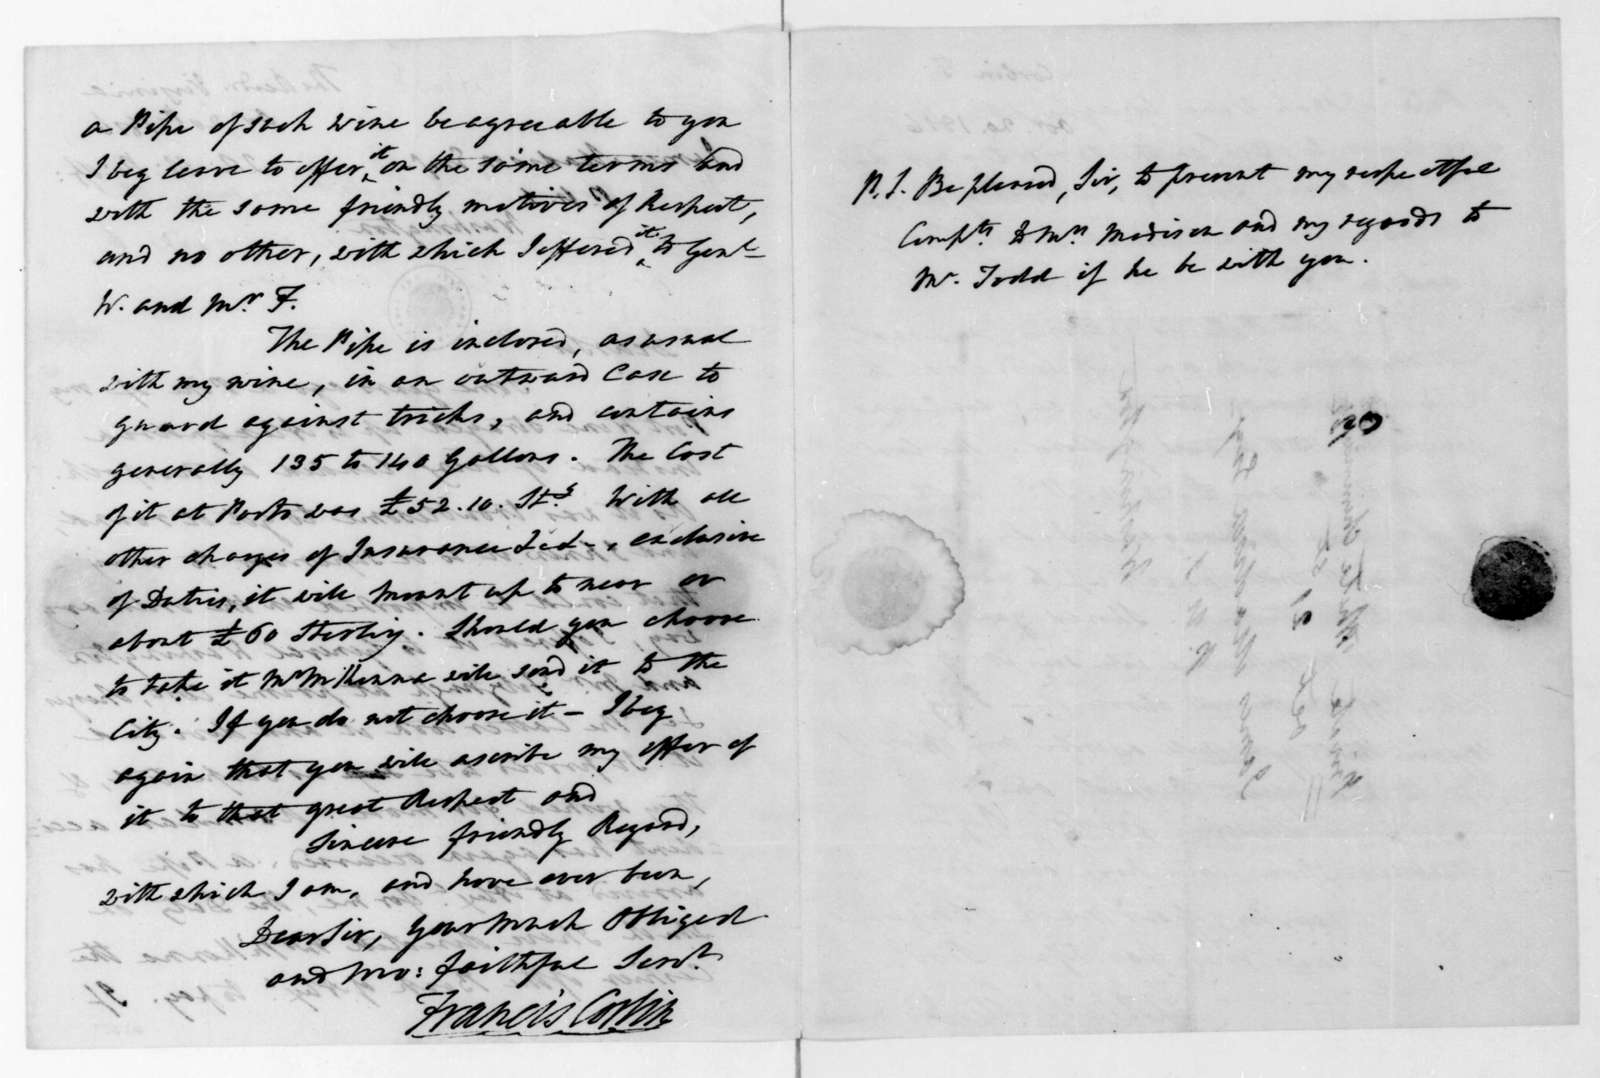 Francis Corbin to James Madison, October 20, 1816.